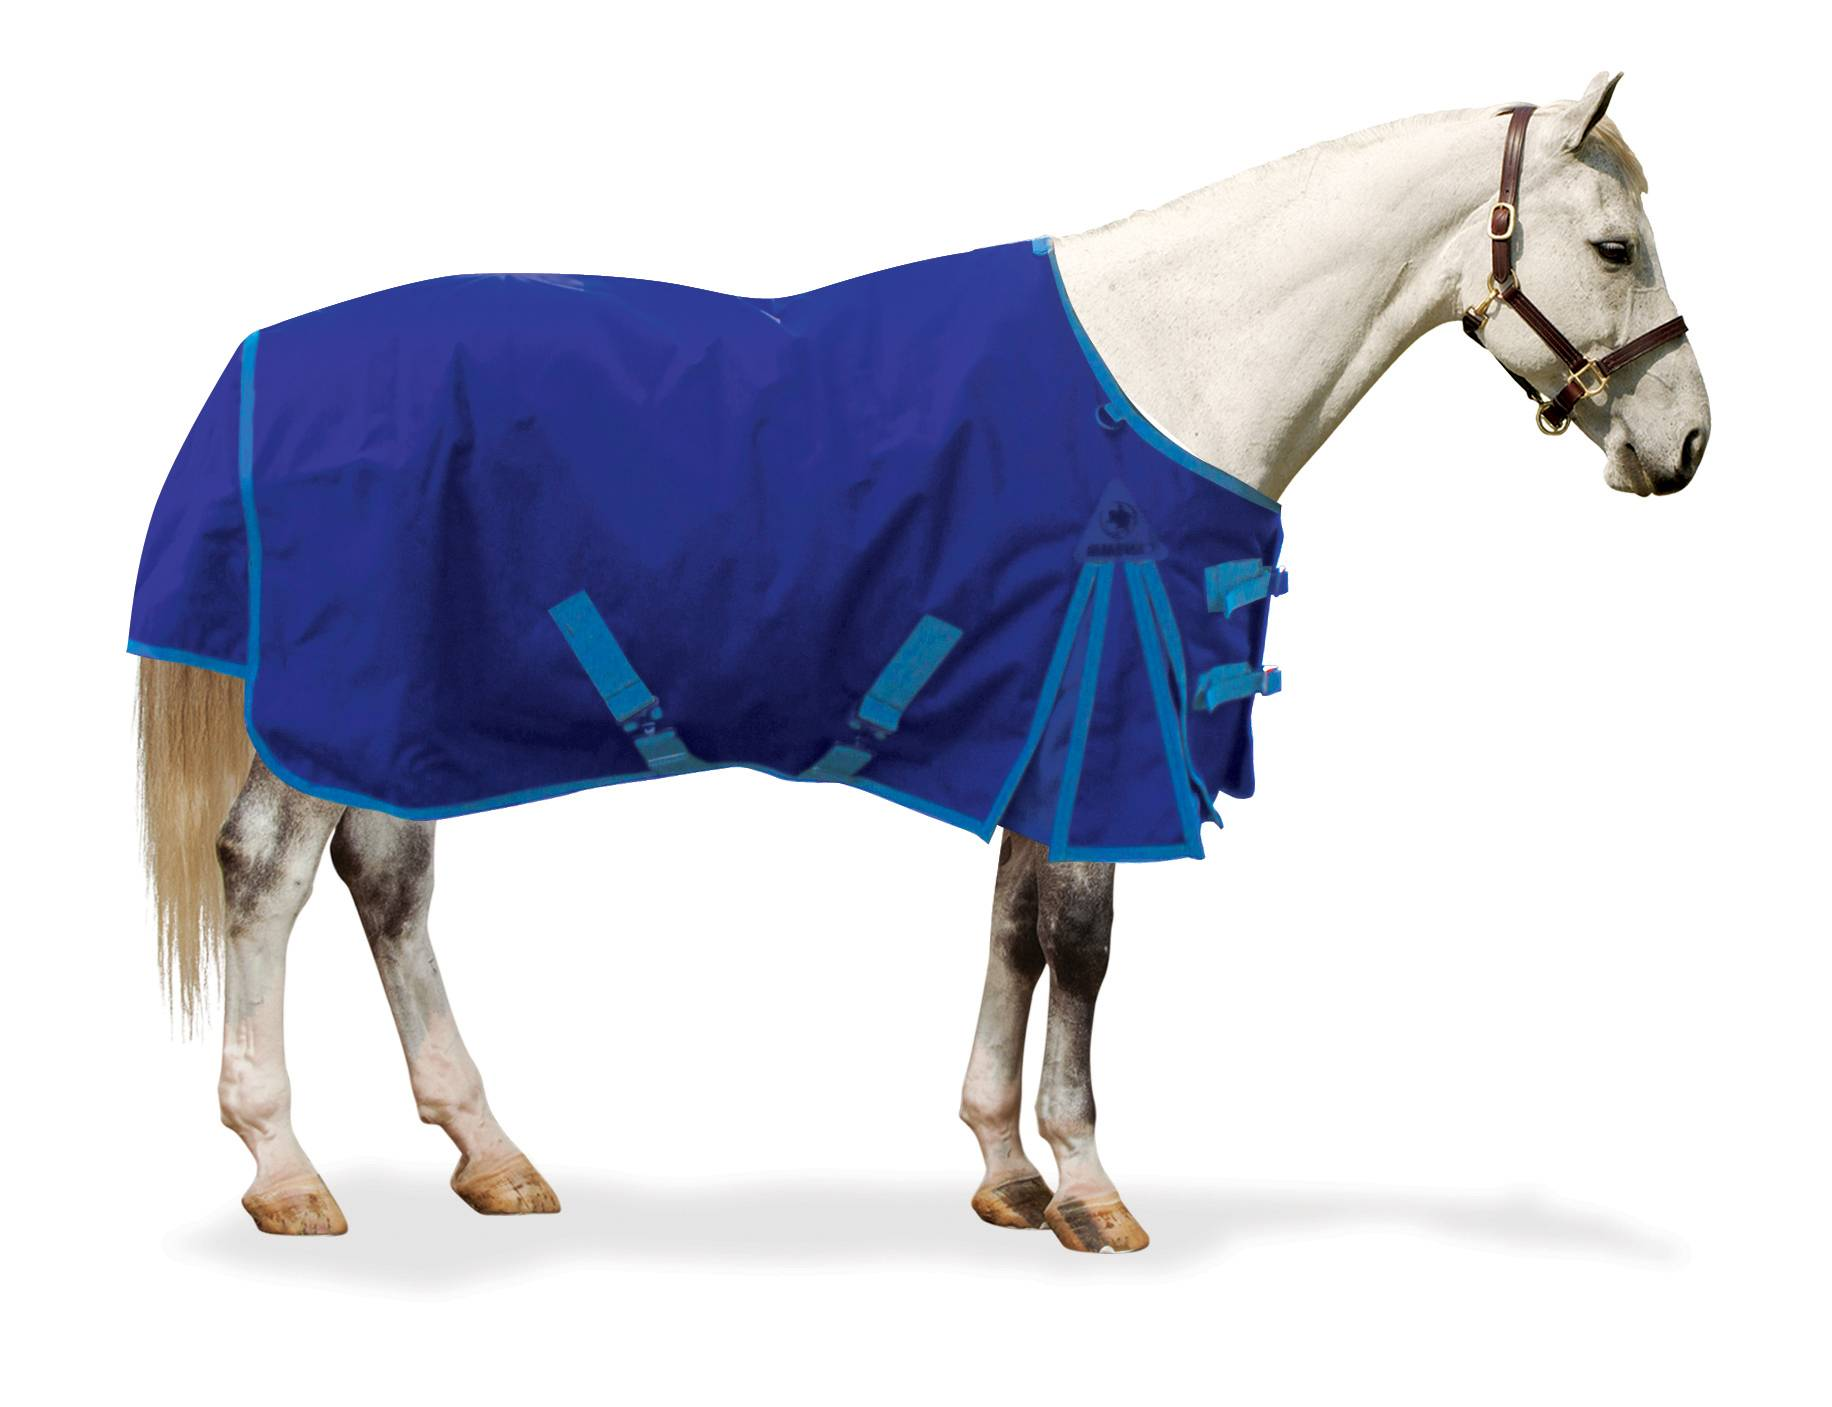 Centaur 1200D Turnout Blanket - Pony, Medium (150g)